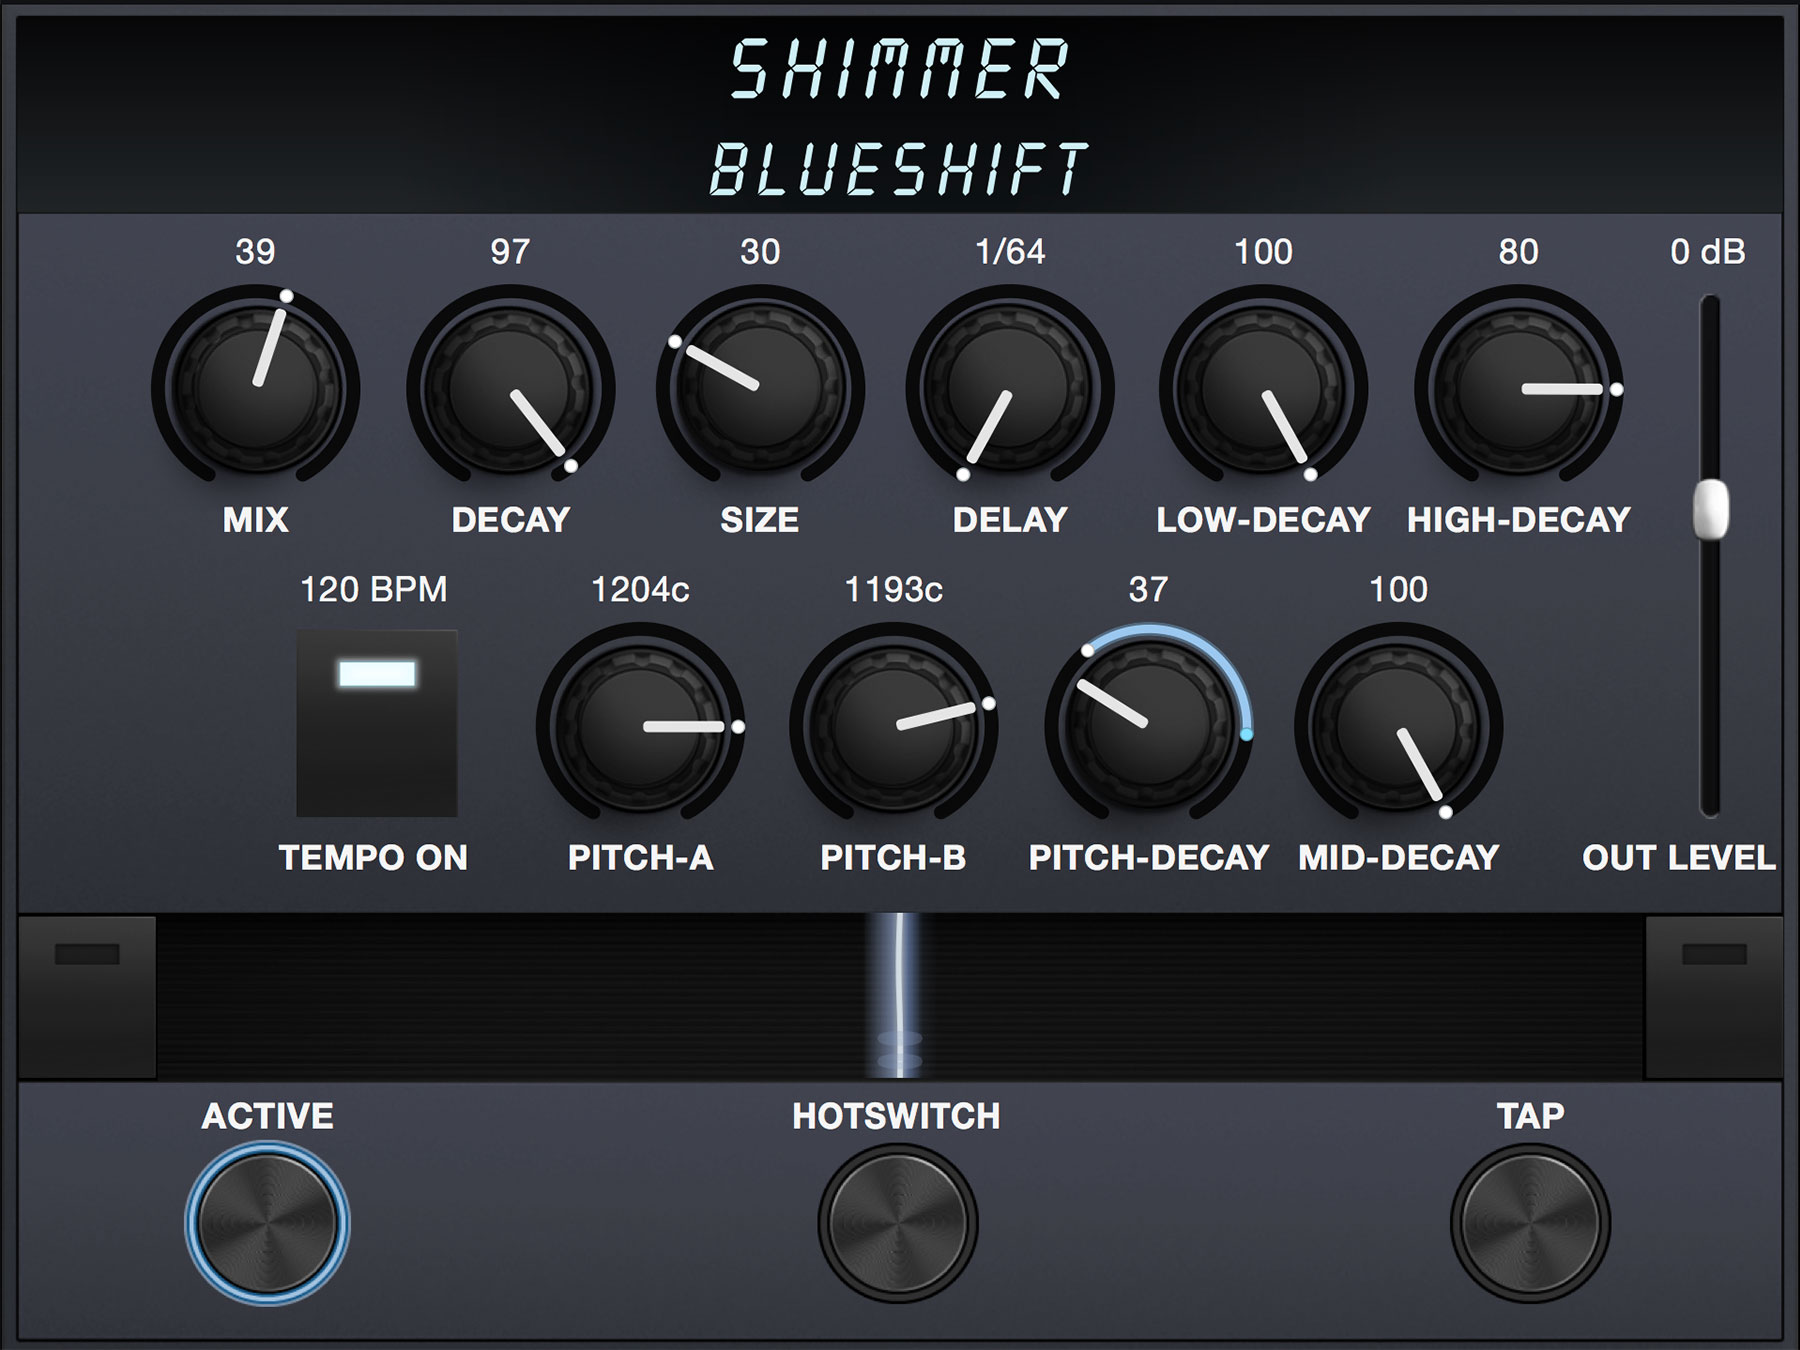 Screenshot of Shimmer algorithm preset Blueshift by Derya Nagle